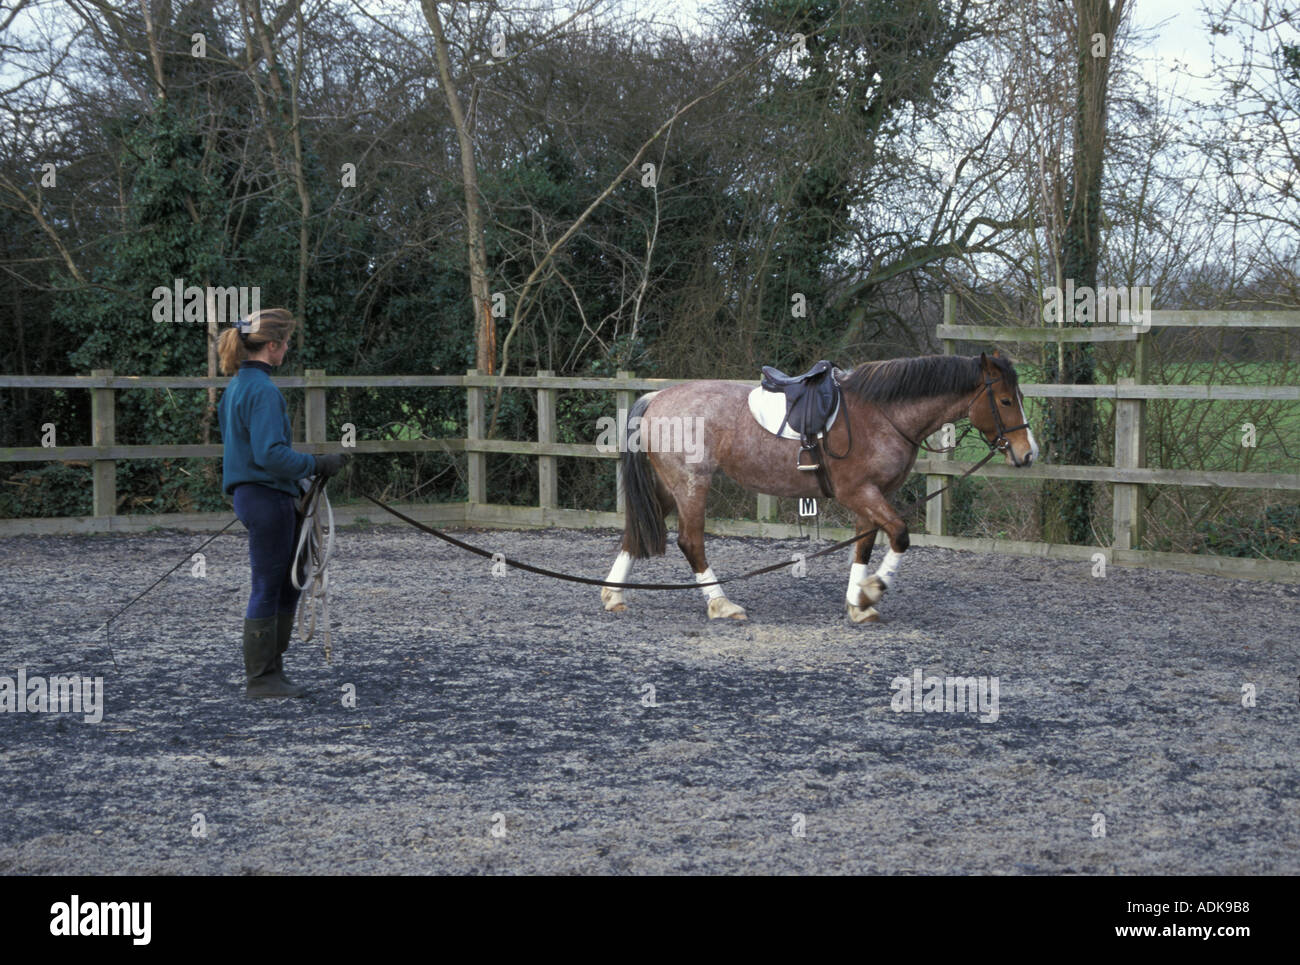 Sports Pastimes Horses Lunging a pony - Stock Image